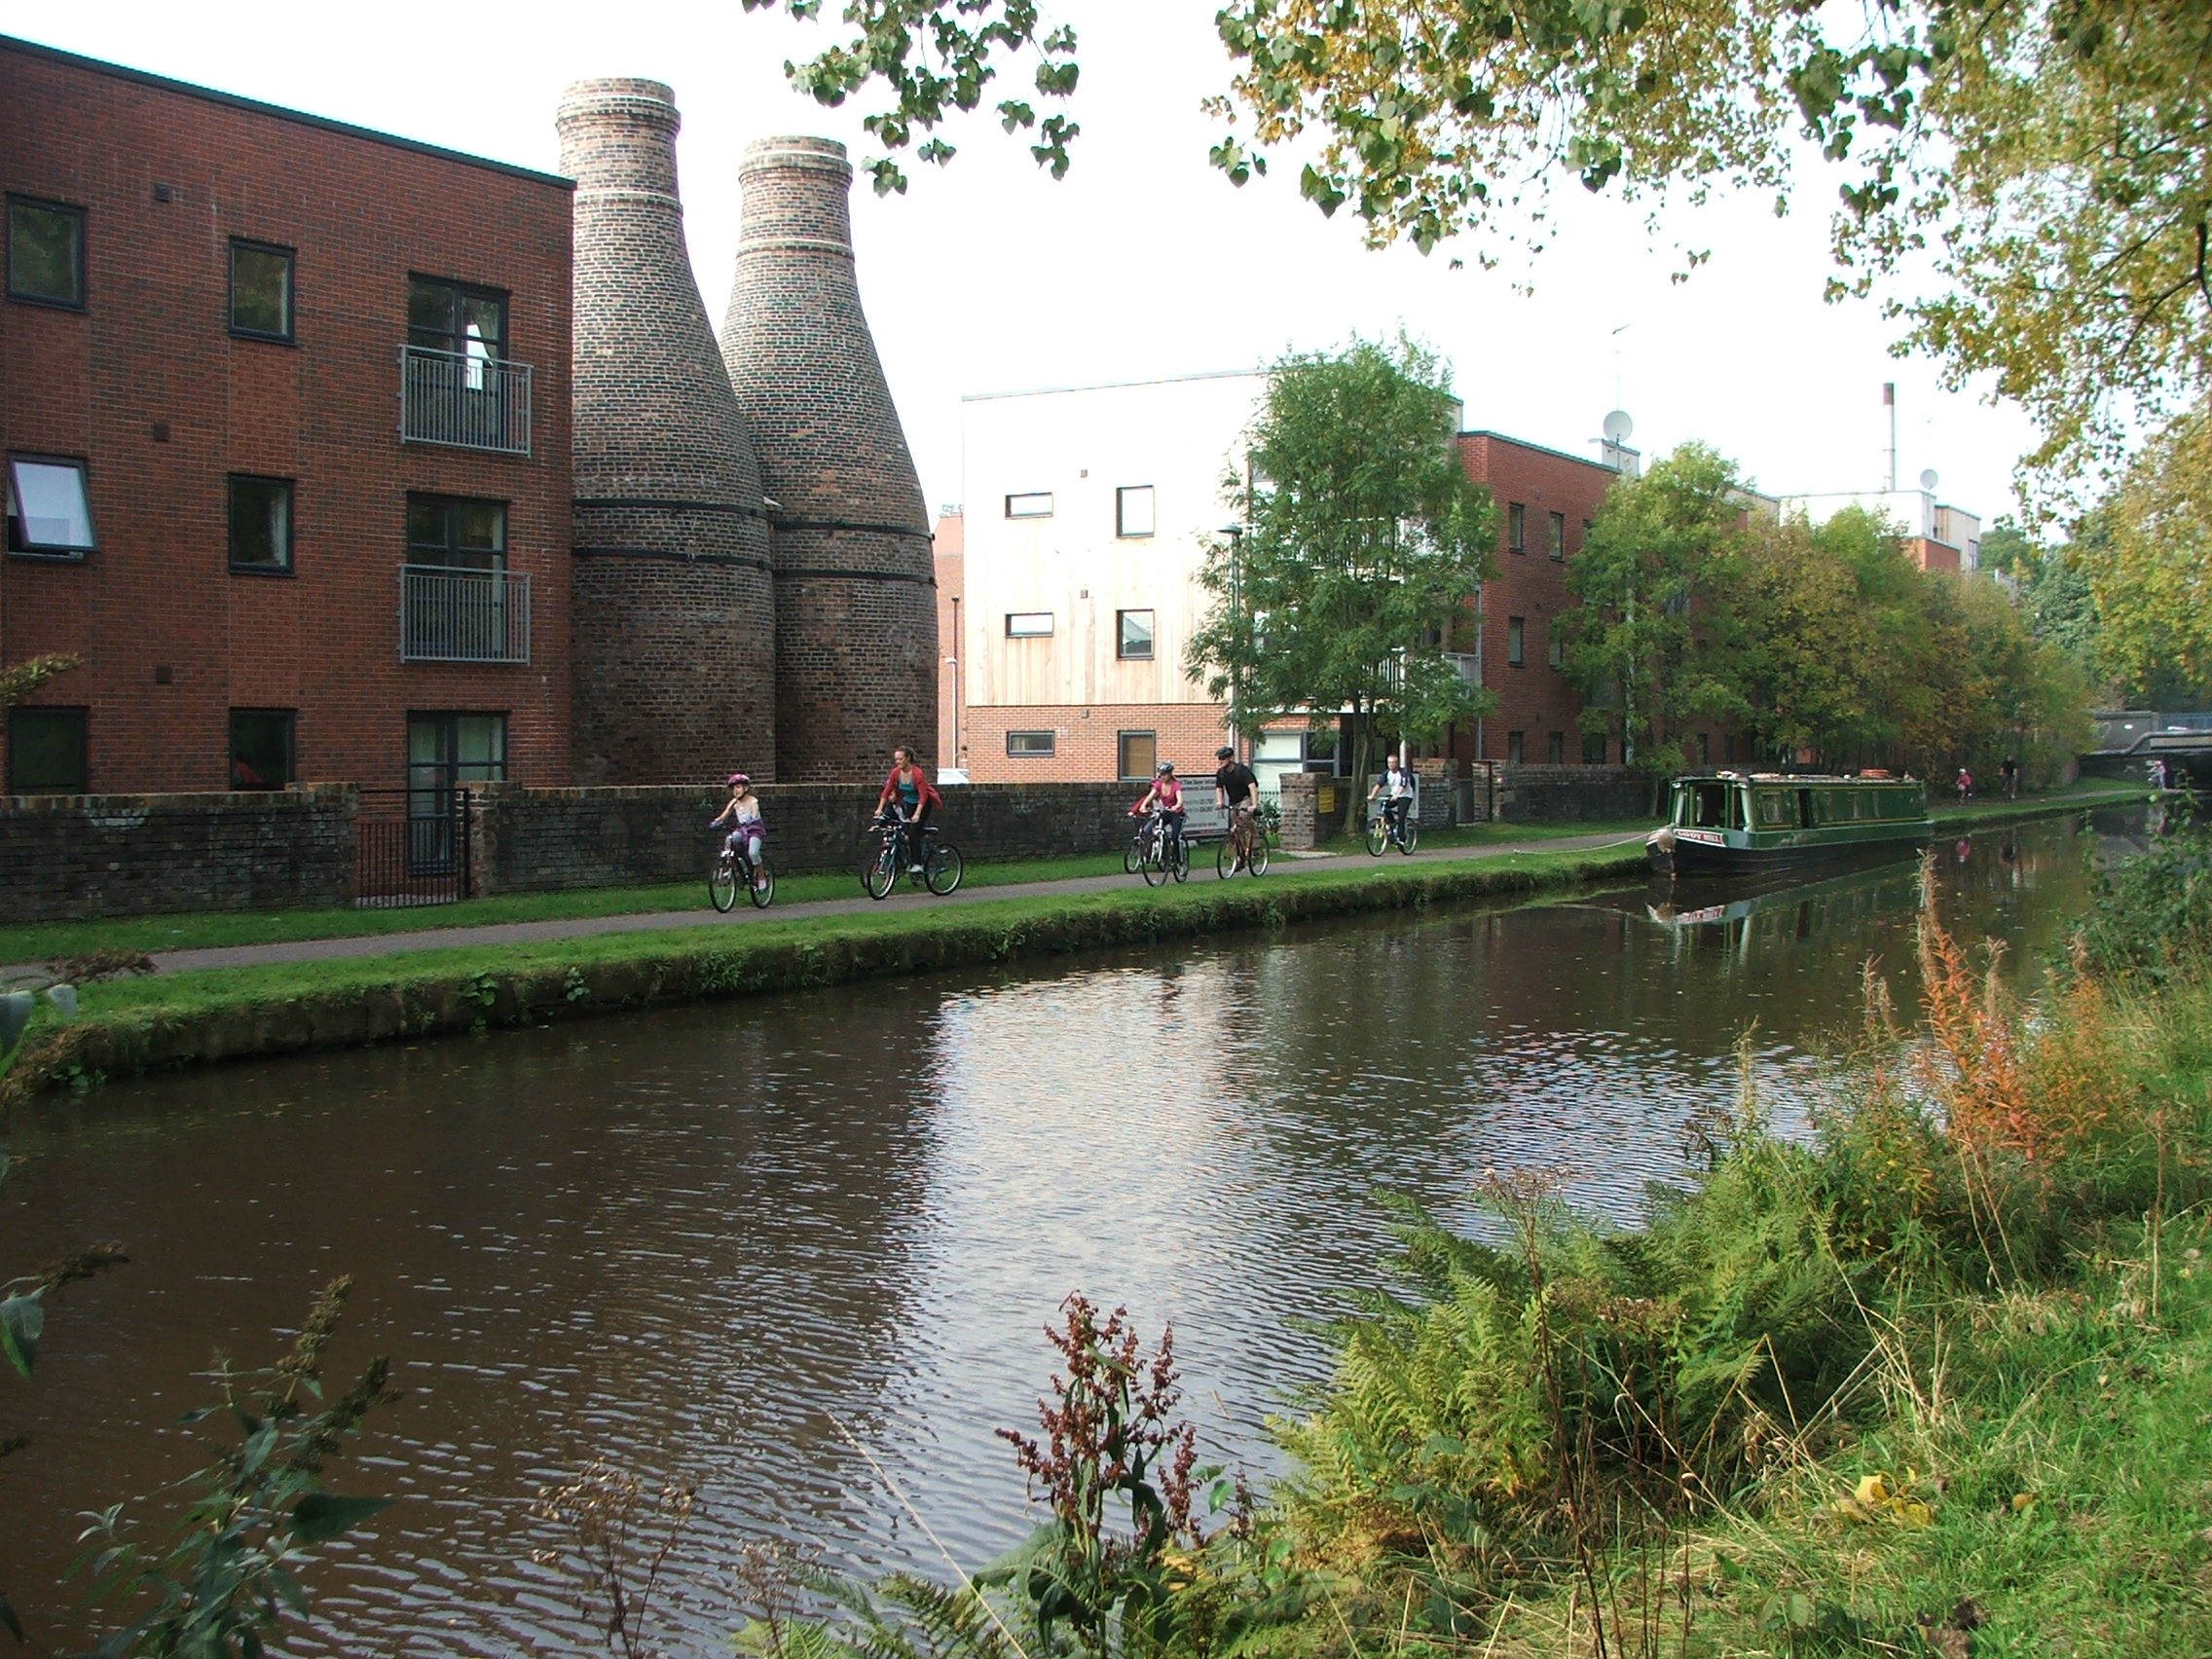 Bottle ovens and new flats in Stoke-on-Trent